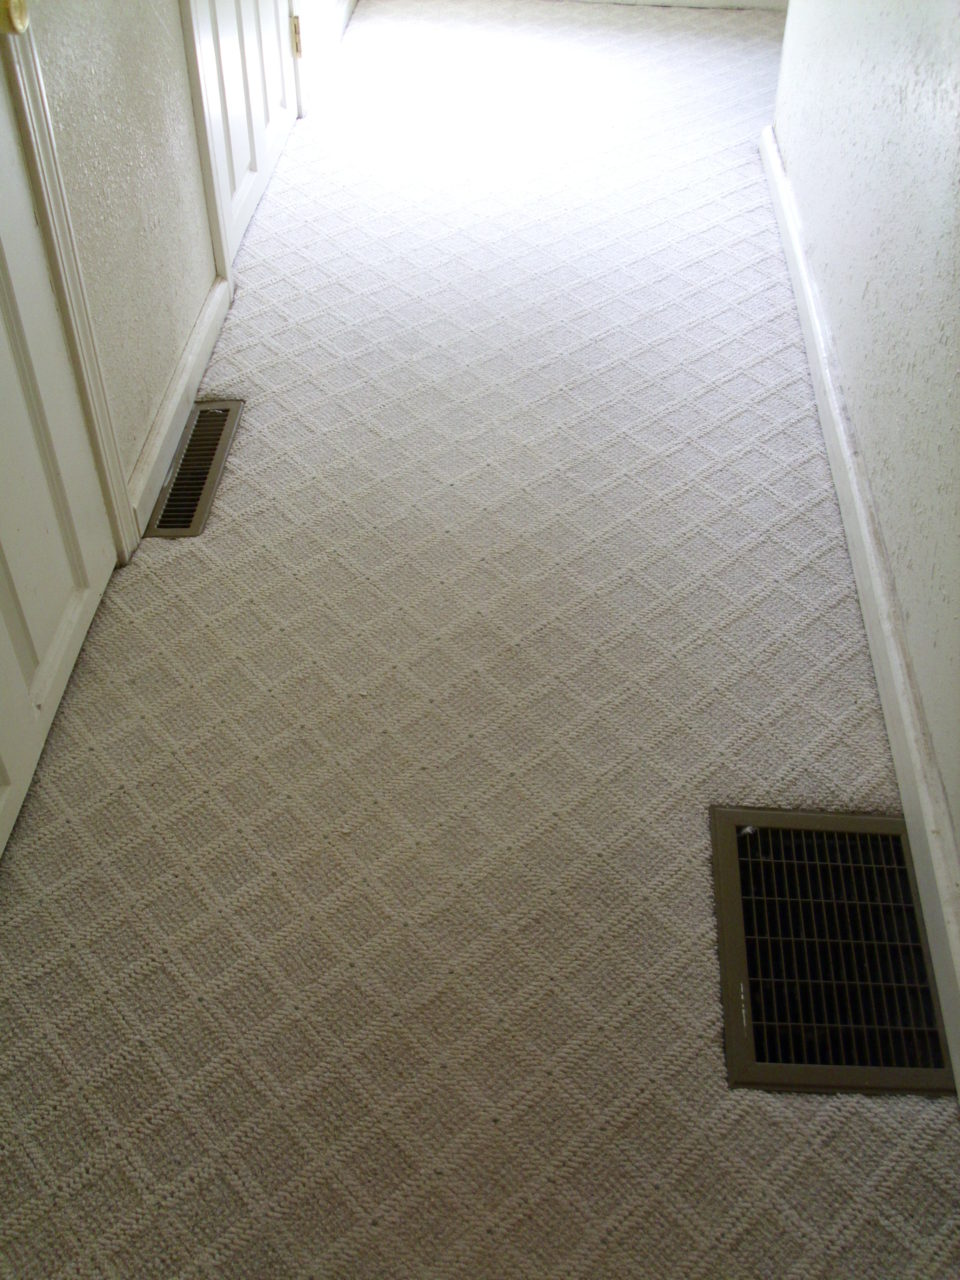 Same hallway Before & after photos